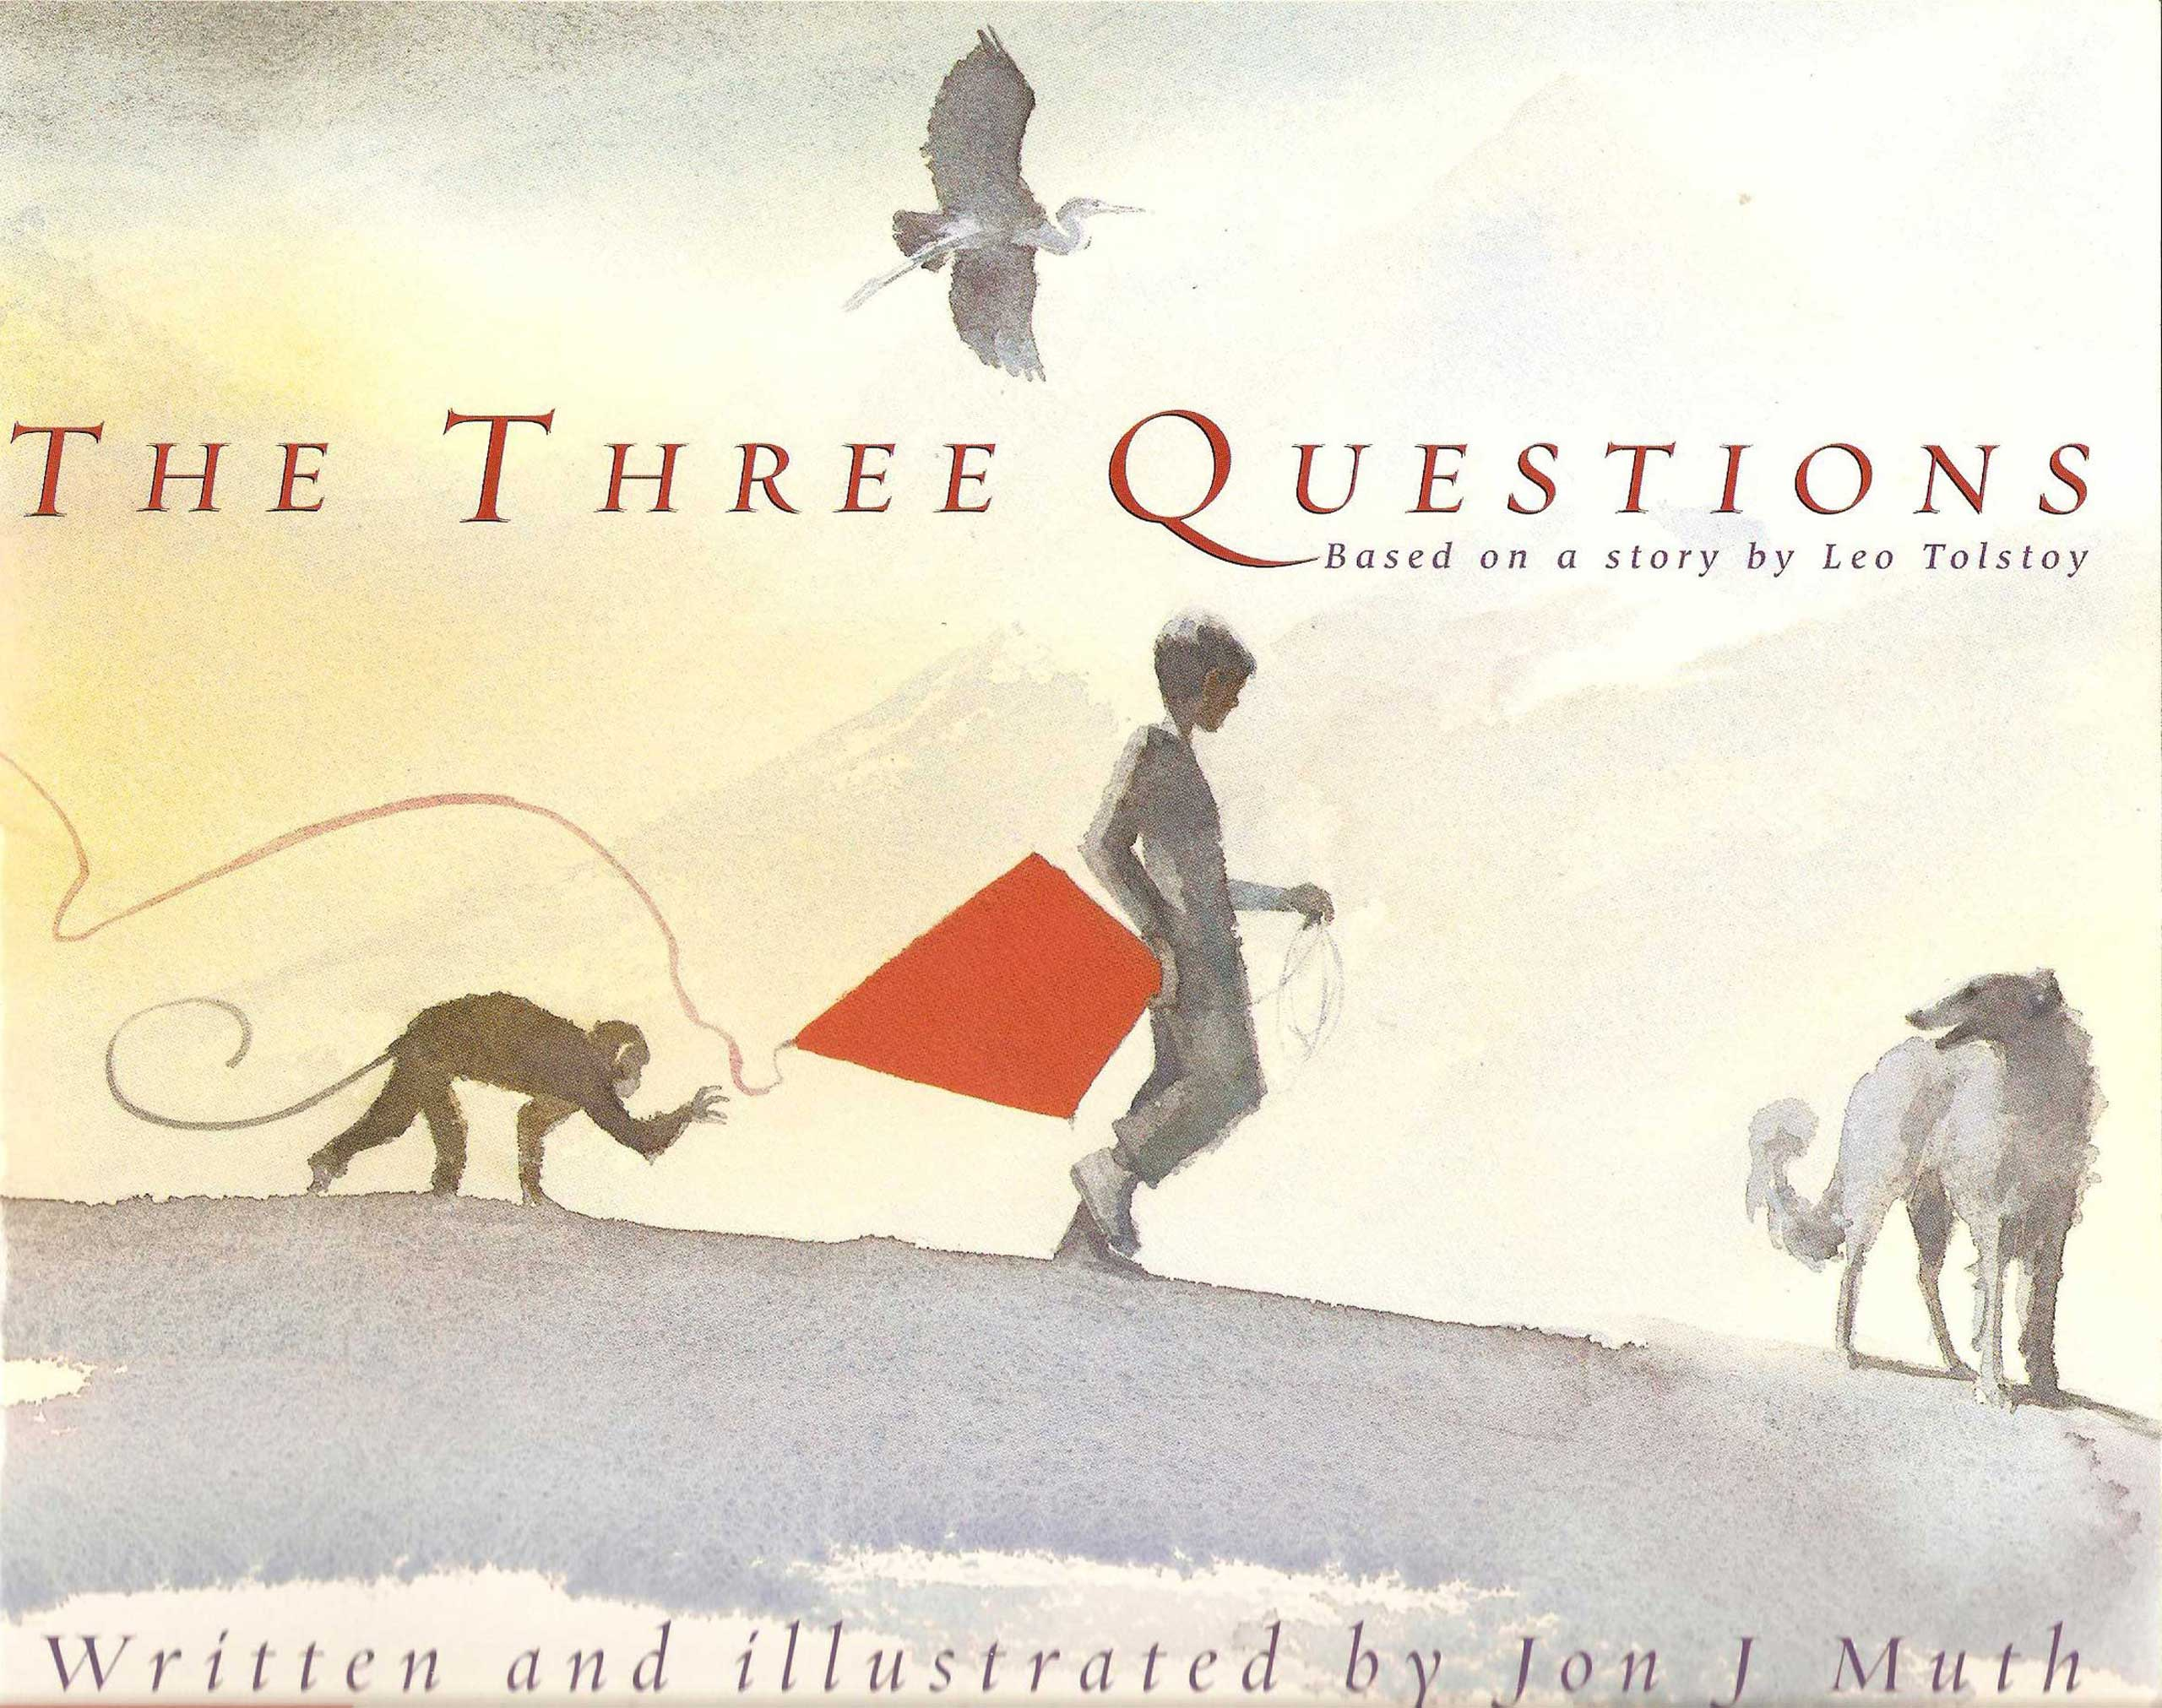 The Three Questions, by Jon J. Muth.                                                                                                                            This watercolor adaptation of a Tolstoy fable squeezes the original's philosophy into a kid-sized portion.                                                                                                                            Buy now: The Three Questions